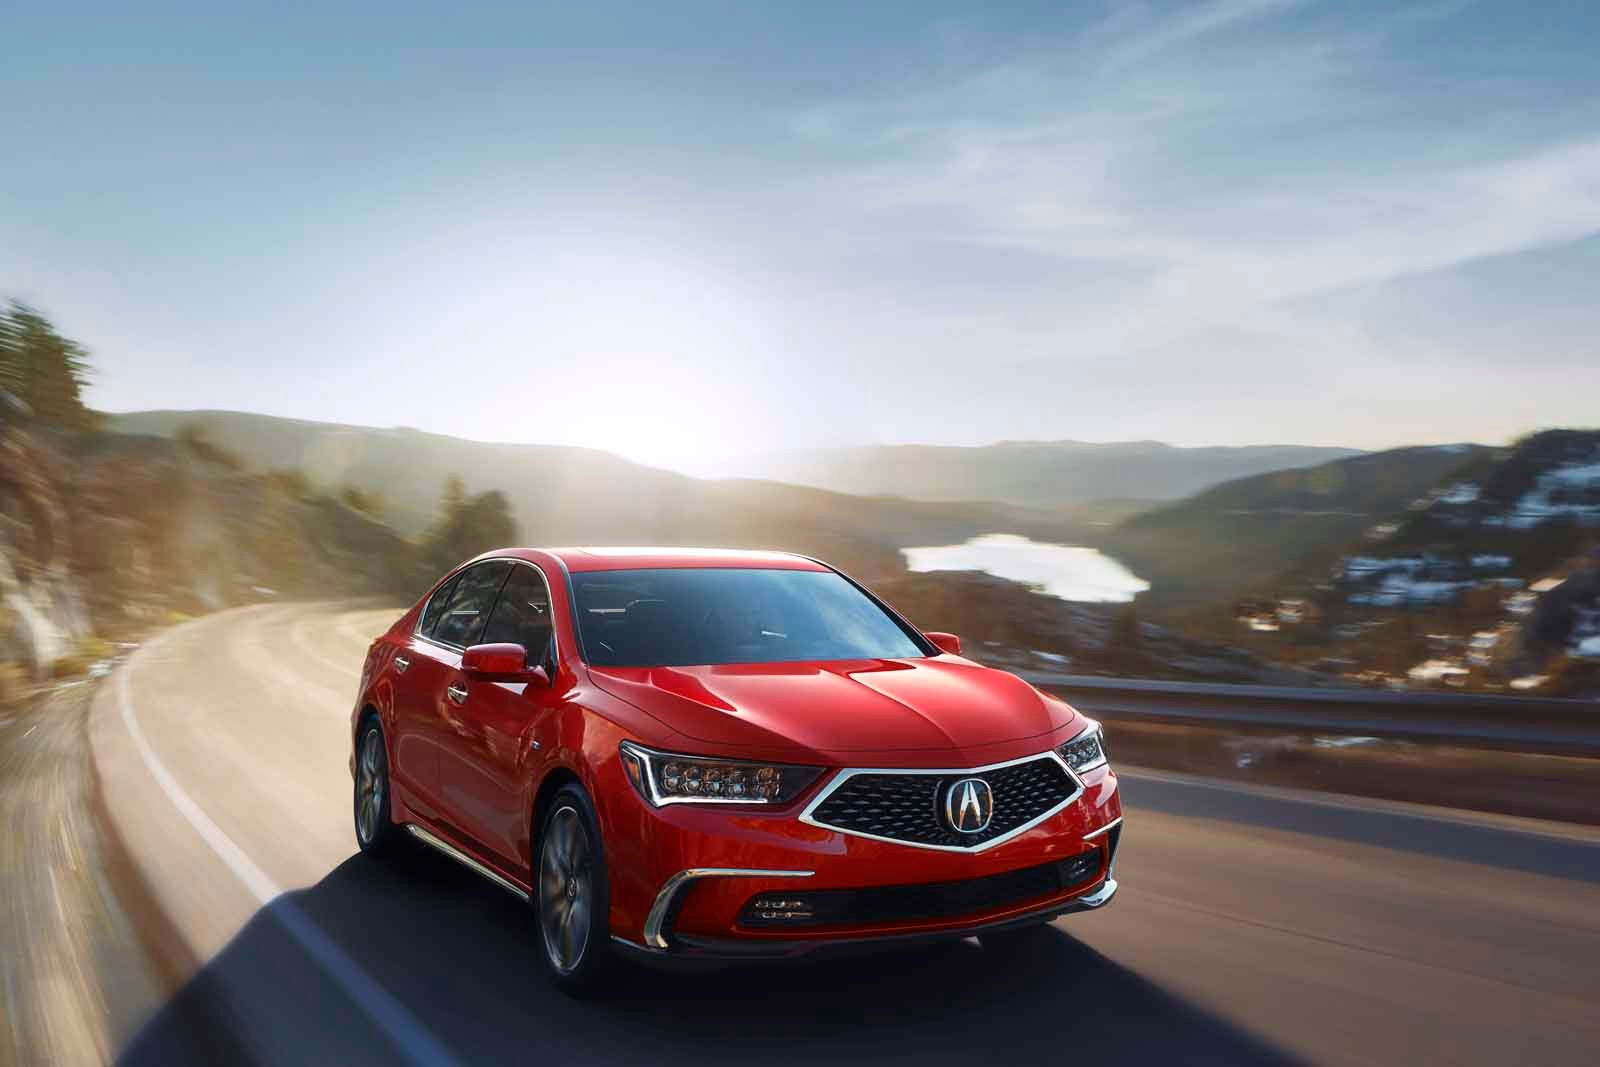 Say hello to the all-new, redesigned Acura RLX